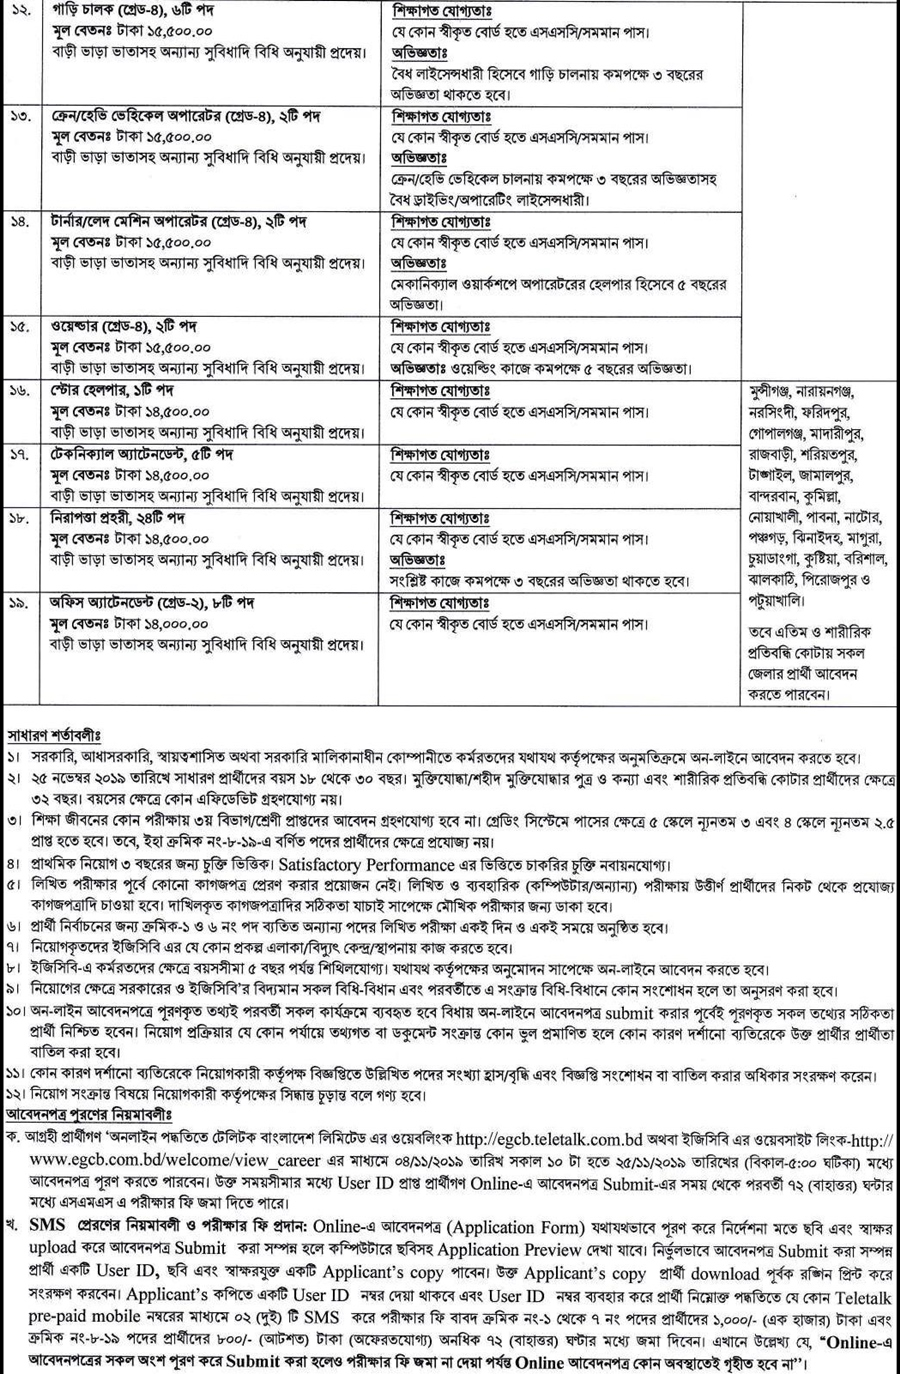 Electricity Generation Company of Bangladesh Limited (EGCB) Job Circular 2019